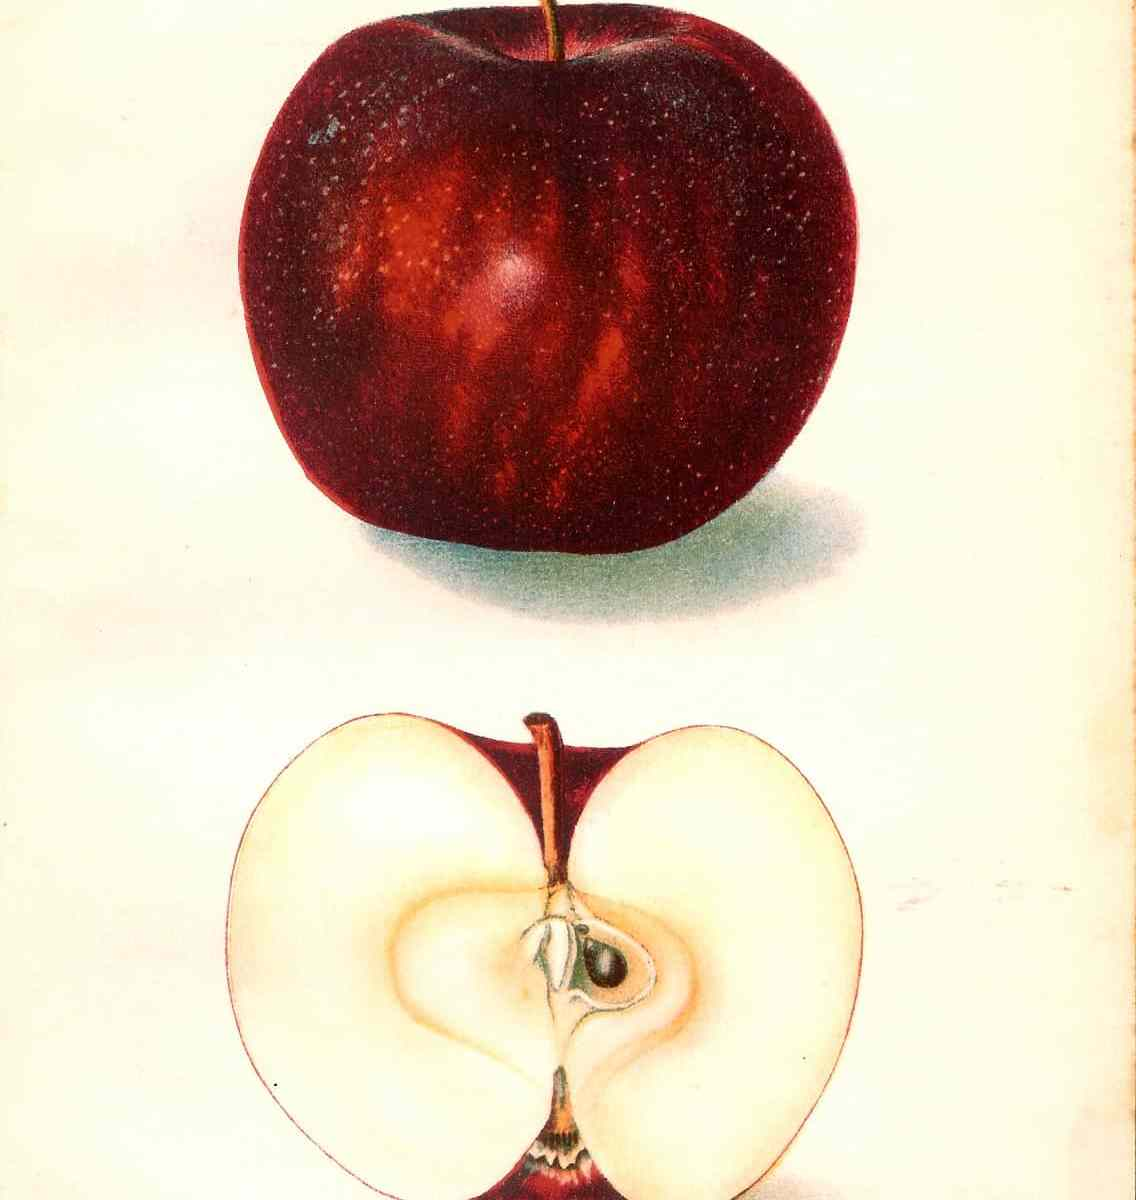 255 dept of ag magnate apple 1906